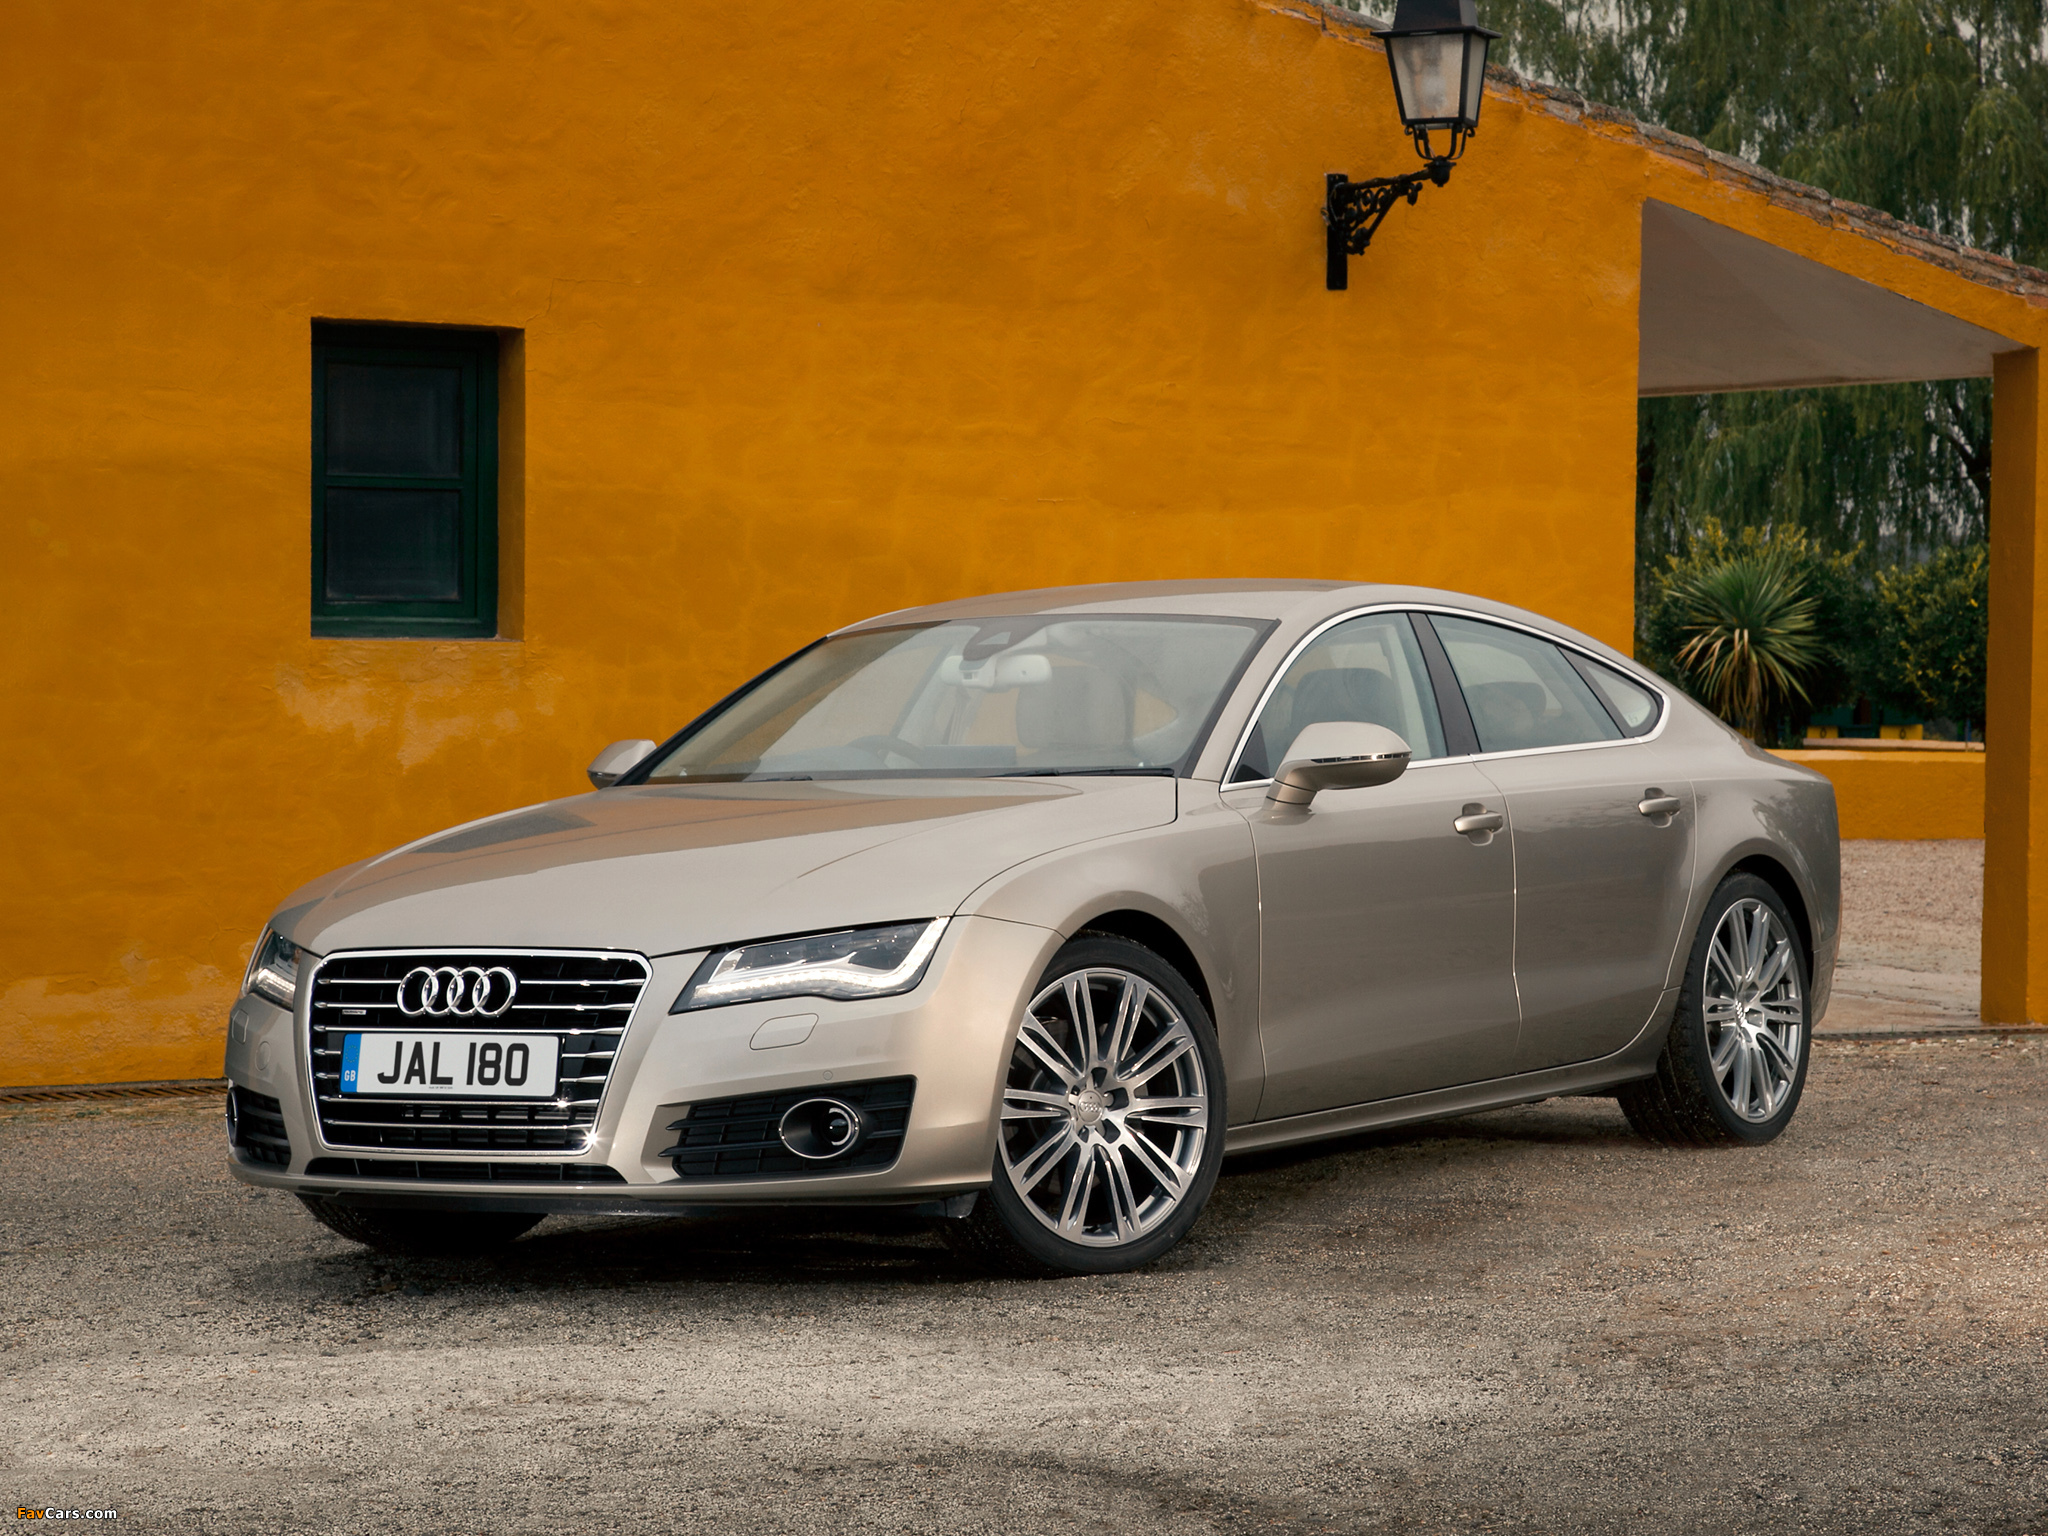 pictures of audi a7 sportback 3 0 tdi quattro uk spec 2010. Black Bedroom Furniture Sets. Home Design Ideas